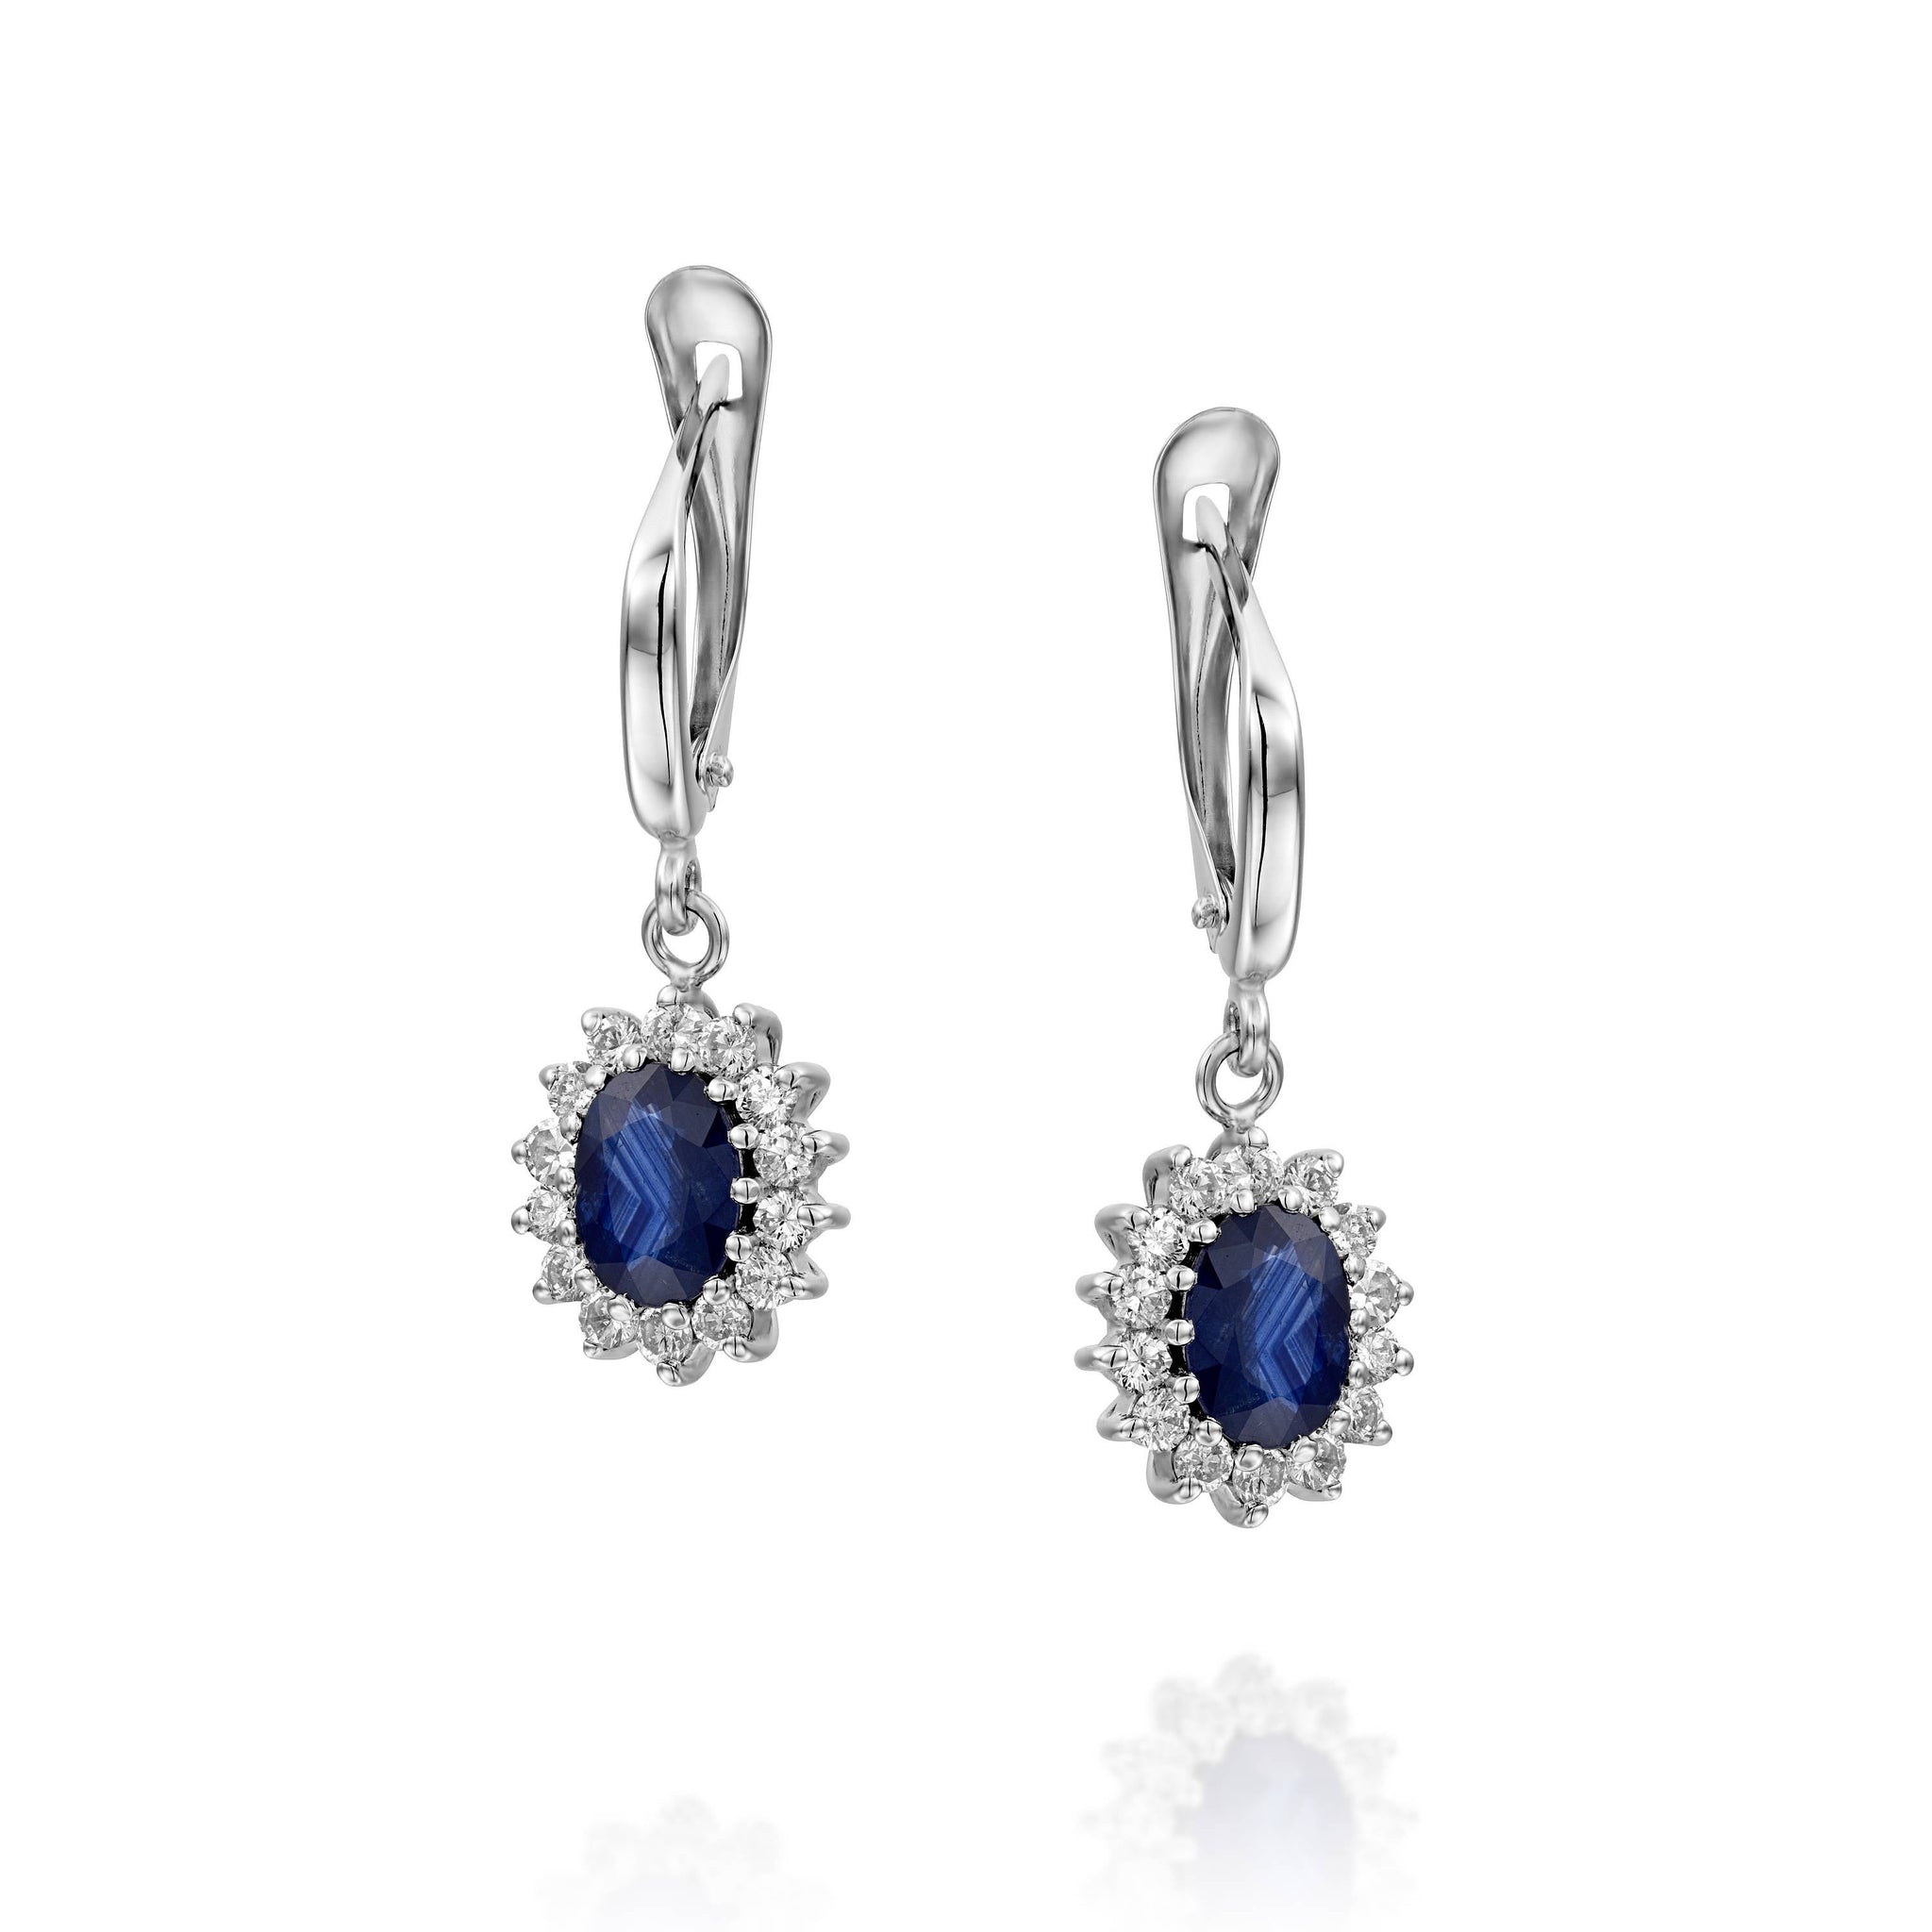 Cluster earrings-Blue Sapphire Earrings-Diamond Earrings with Sapphire-Sapphire Drop Earrings-Women's Jewelry - SevenCarat